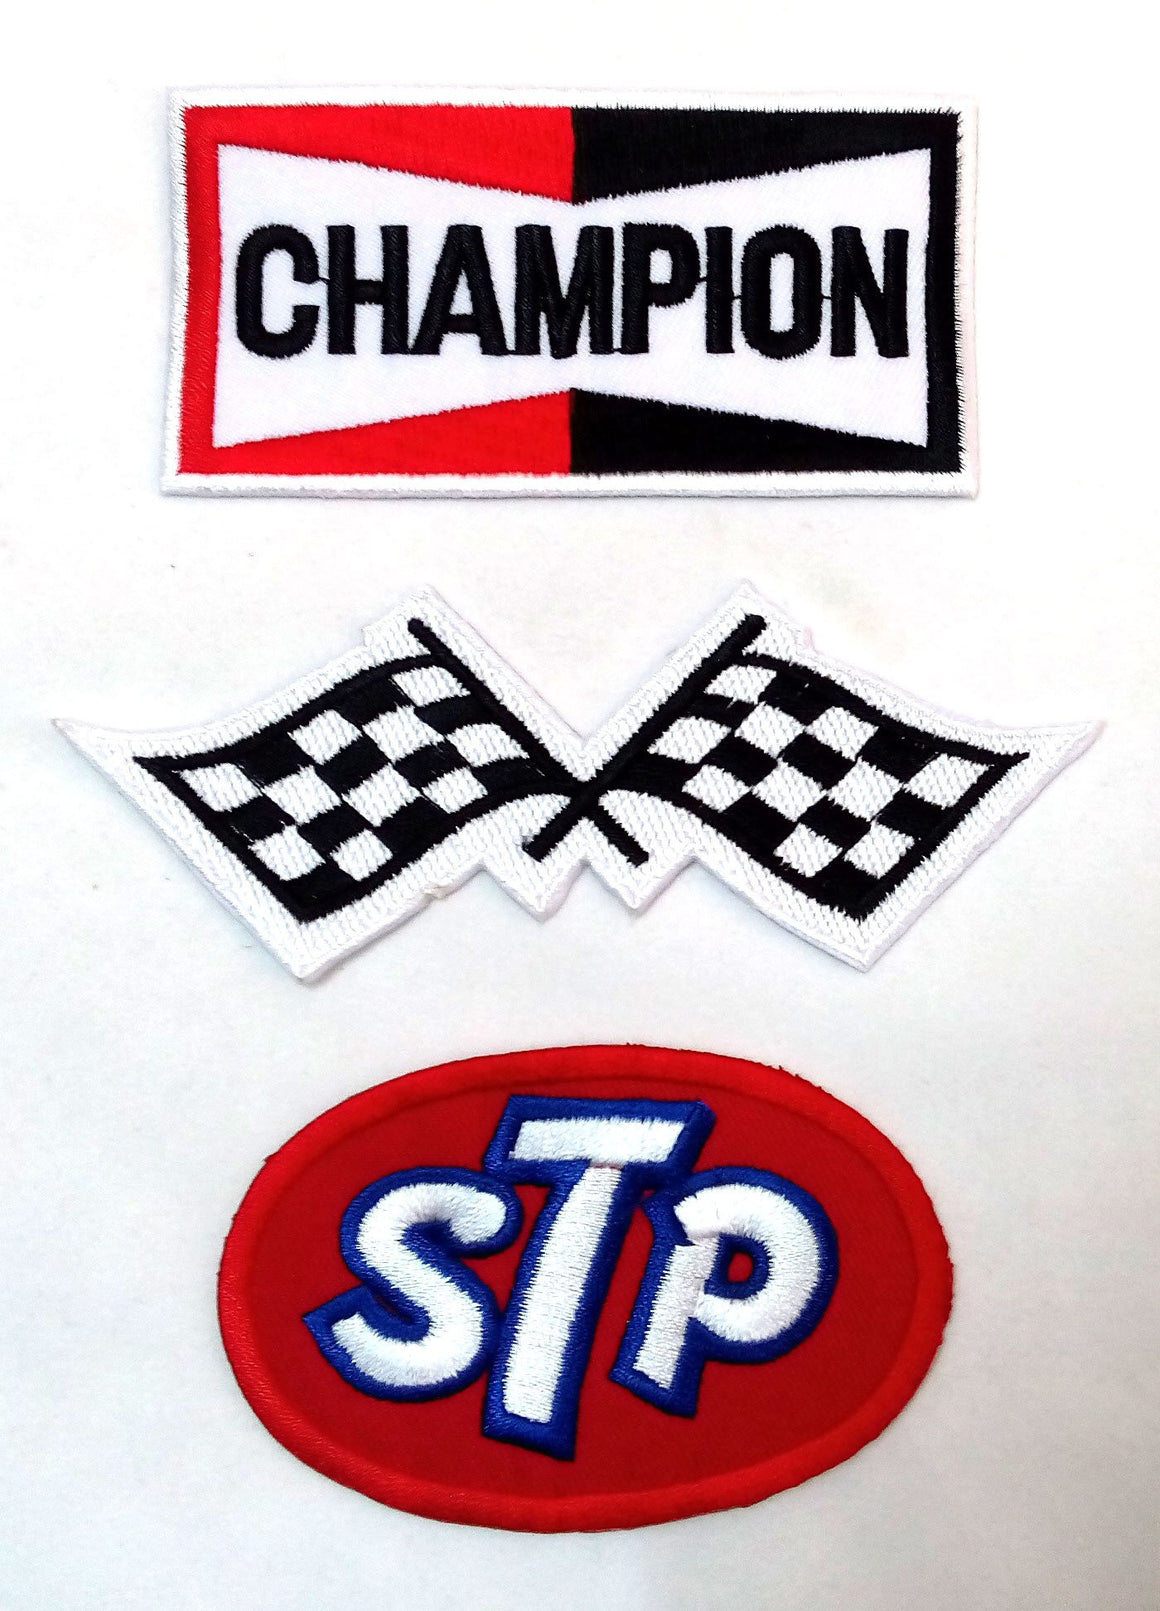 Set_MOTOR001 - STP Oil Patch Auto Racing Patches Set - Motor Patches - Applique Embroidered patches - Iron on Patches - Backpack Patches - Champion Patch Racing Flag Patch STP Oil Patches